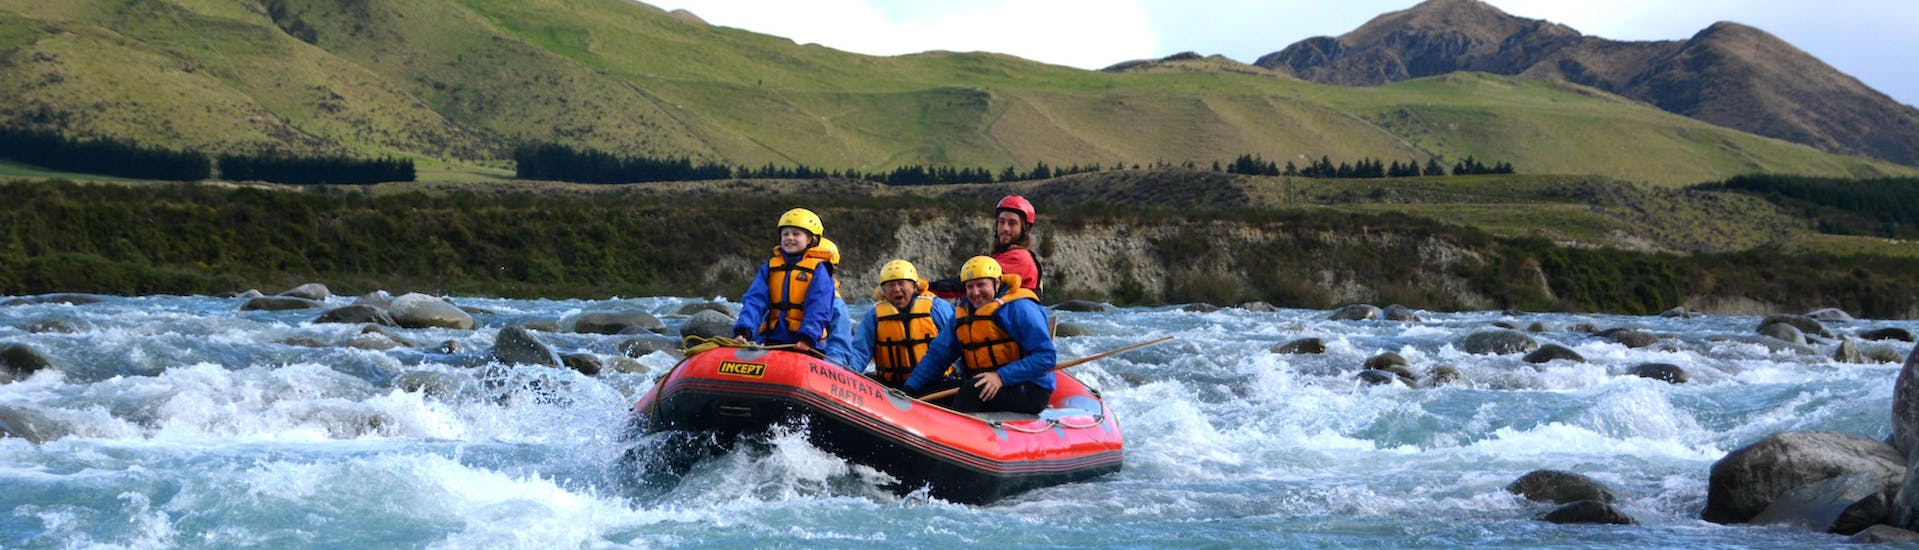 A family is having fun on the river during their Grade 2 Rafting Adventure on Lower Rangitata River organized by Rangitaiki Rafts.